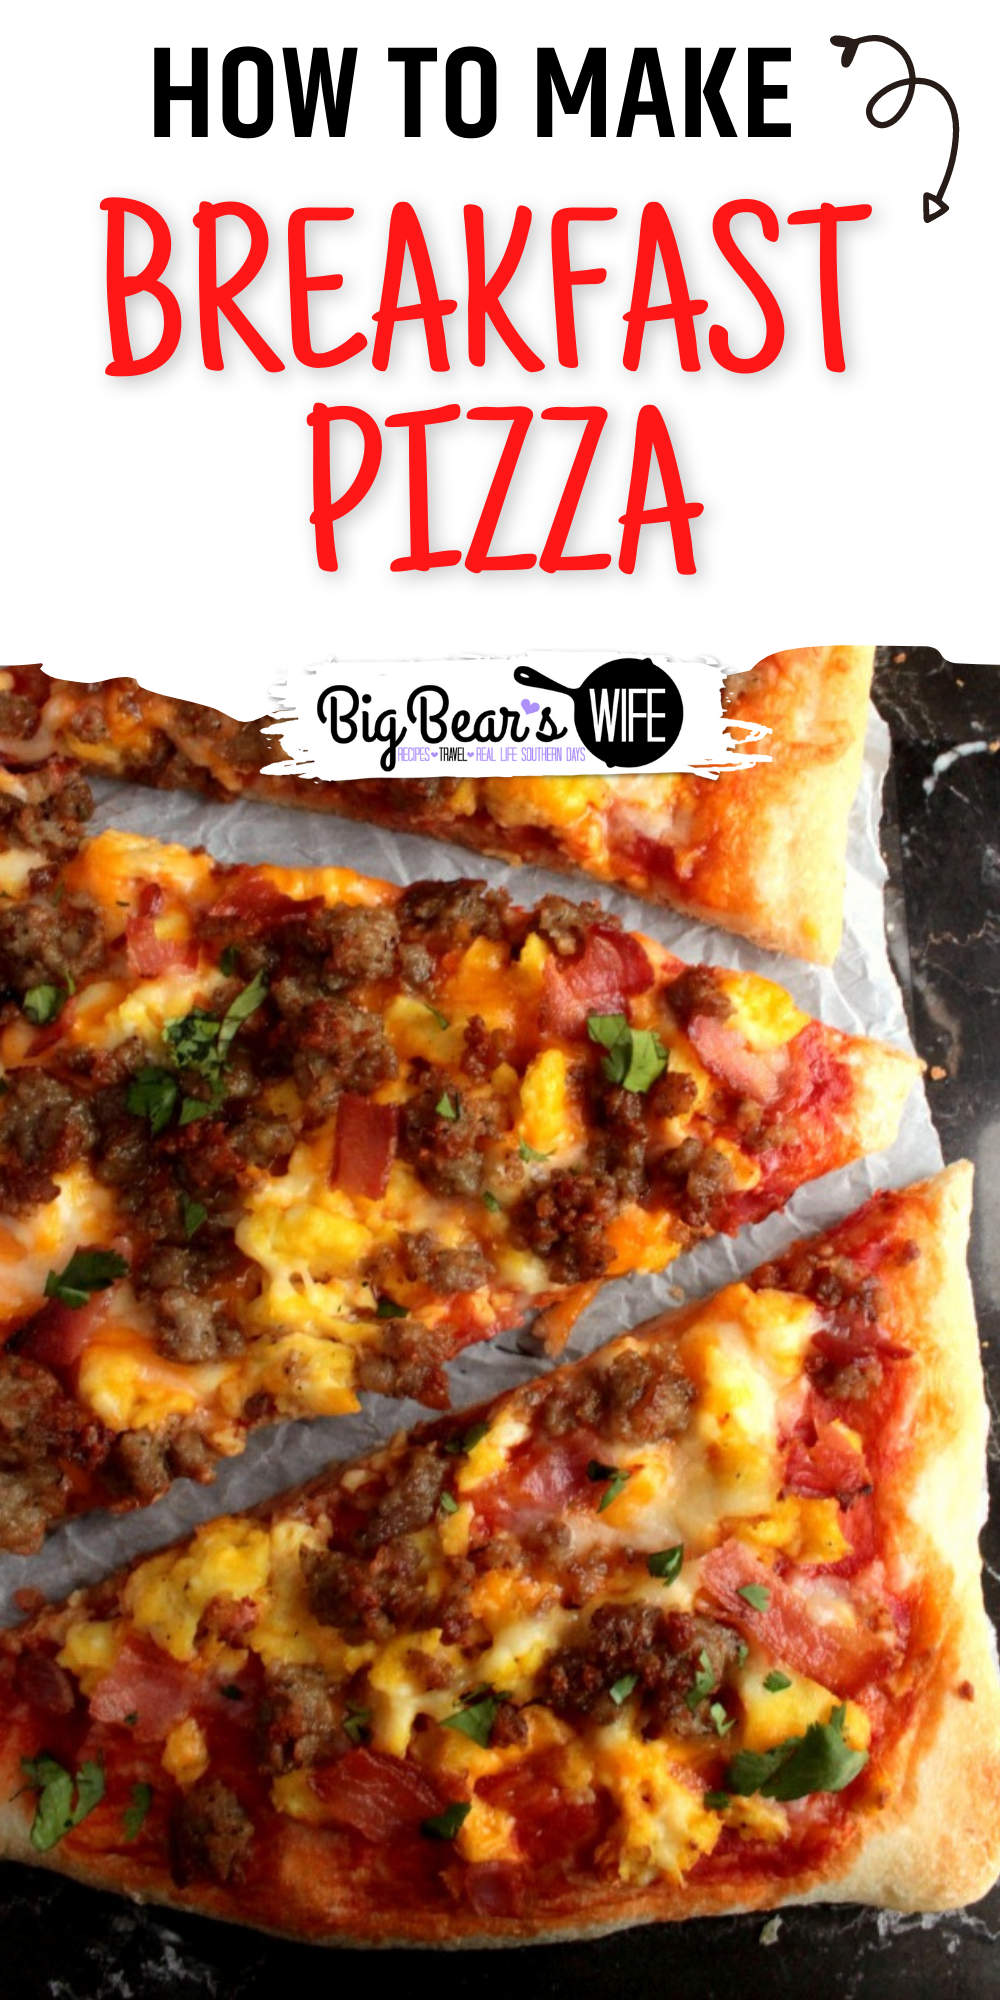 Everything you love about breakfast on a Breakfast Pizza! This Breakfast Pizza had scrambled Eggs, Sausage, Bacon & cheese! Great with a dash of hot sauce! via @bigbearswife